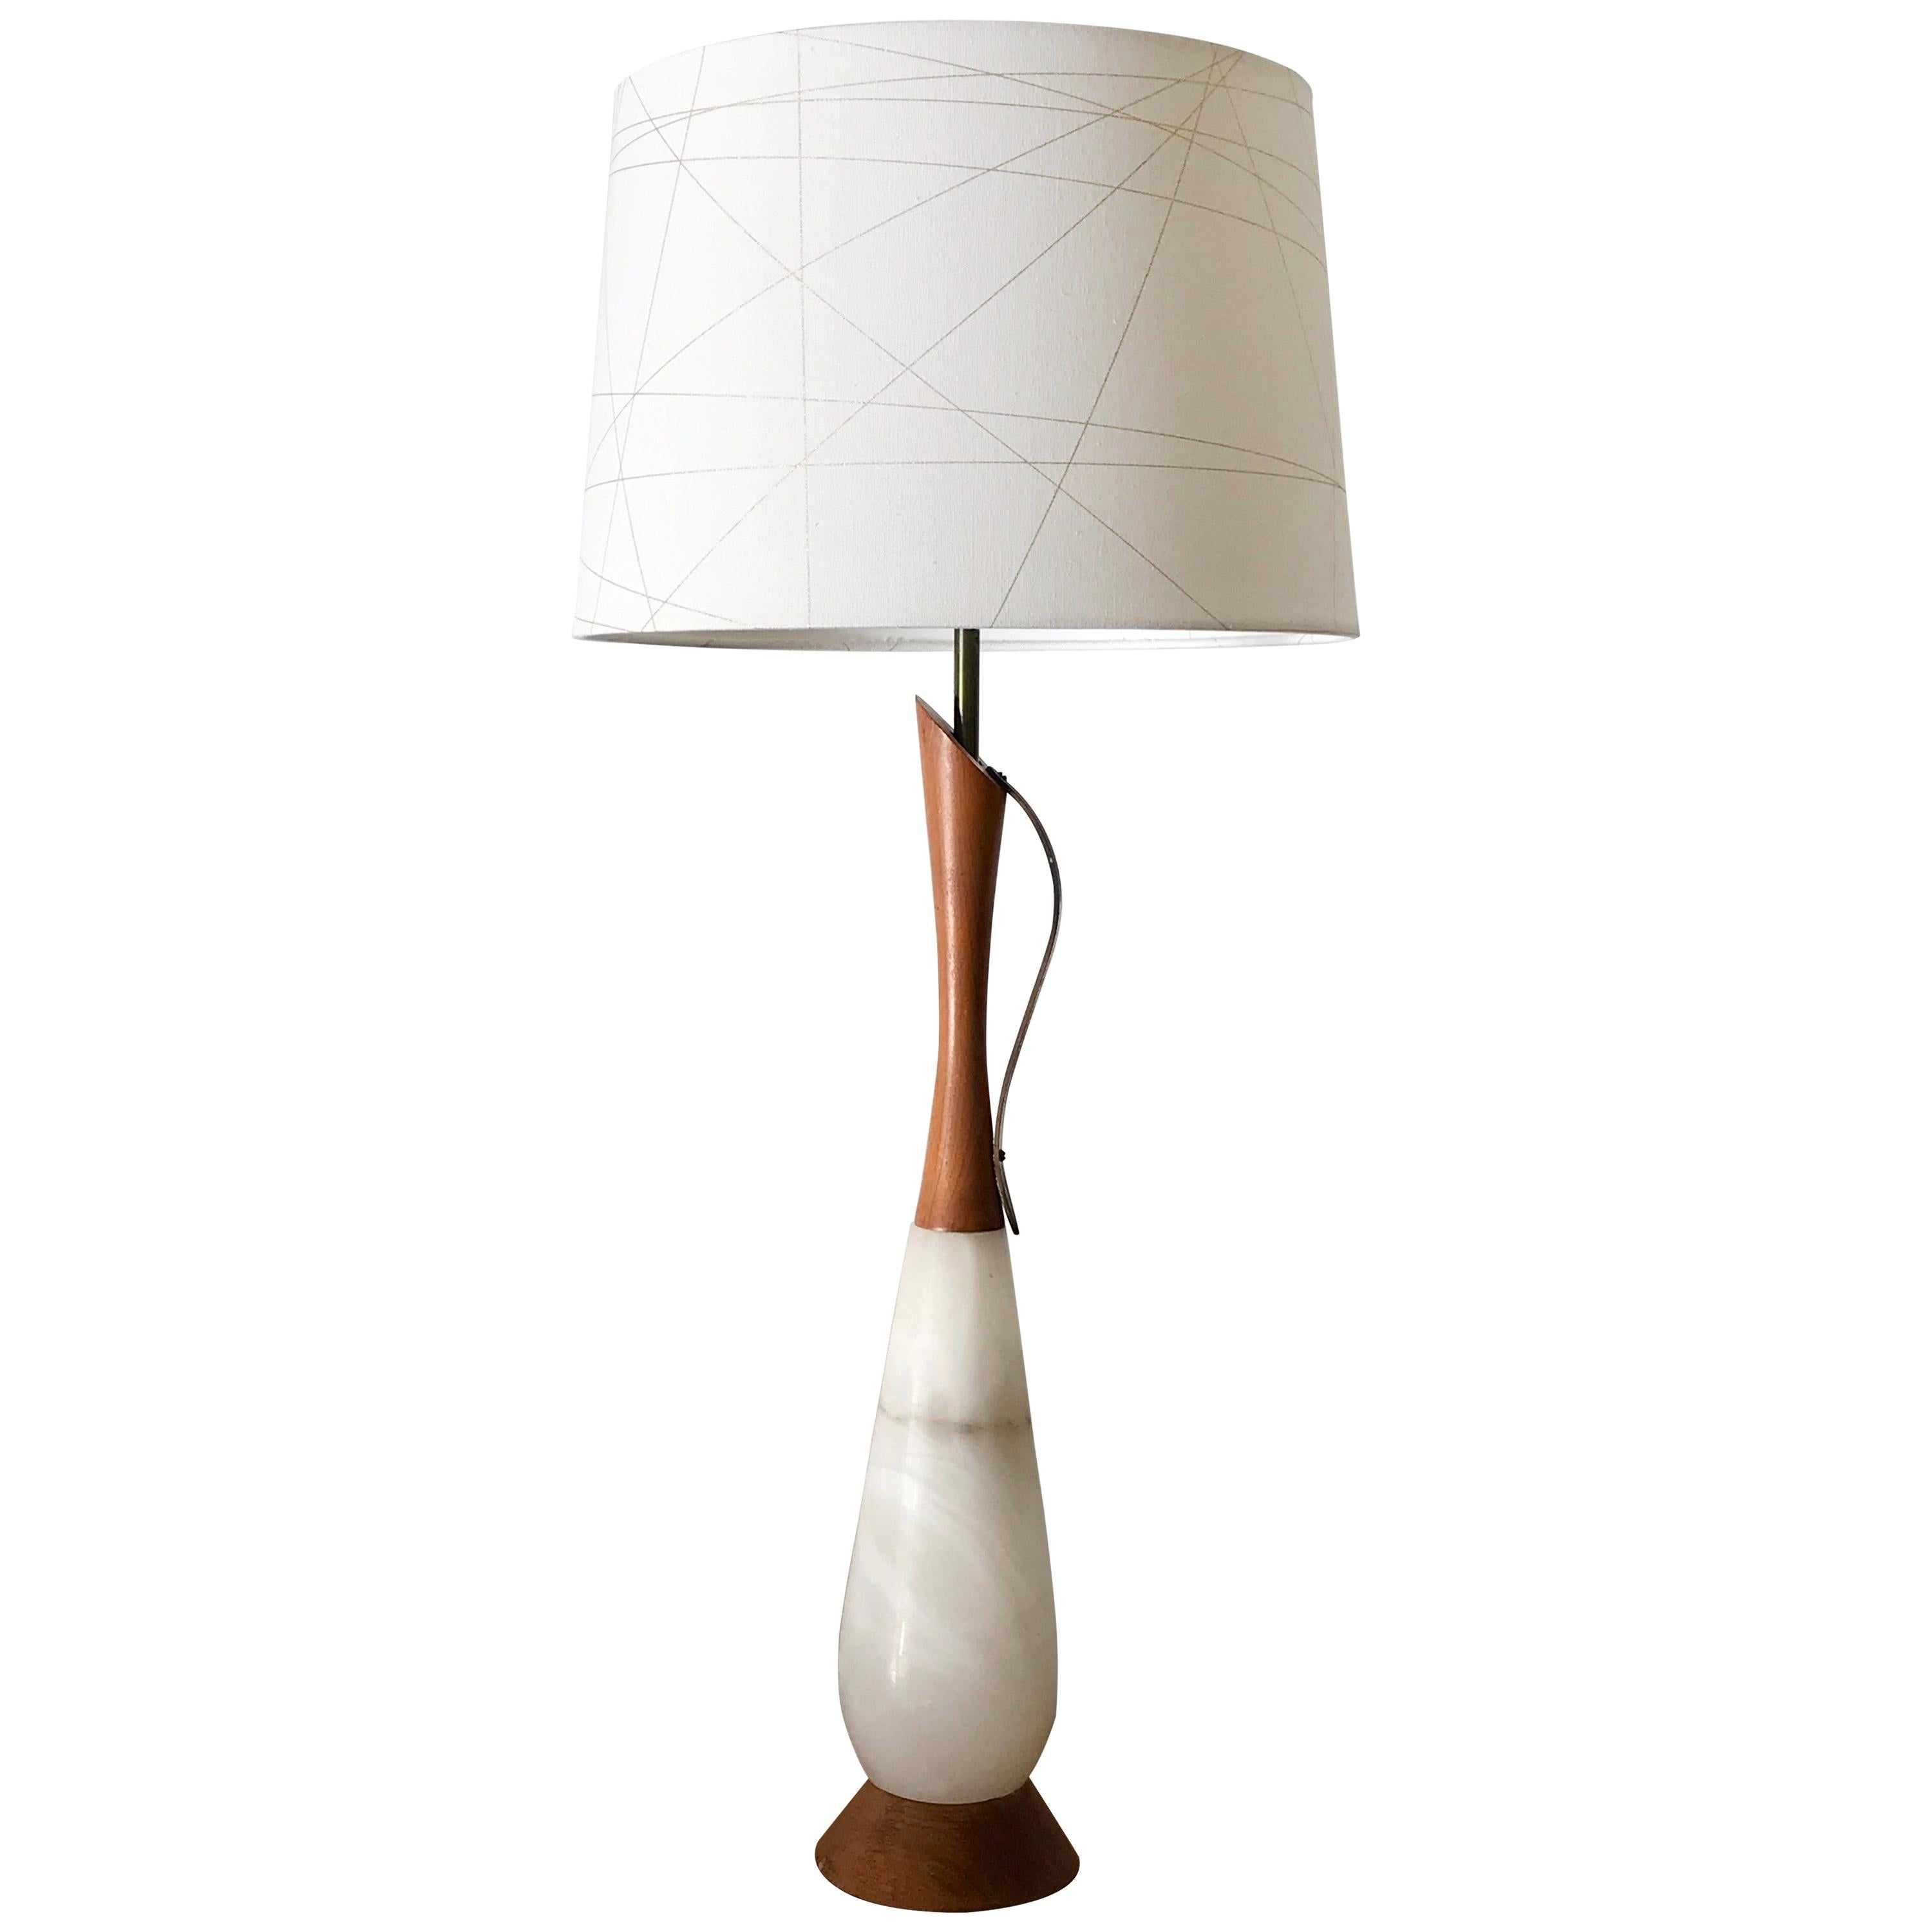 Marble, Walnut, and Brass Mid-Century Modern Table Lamp